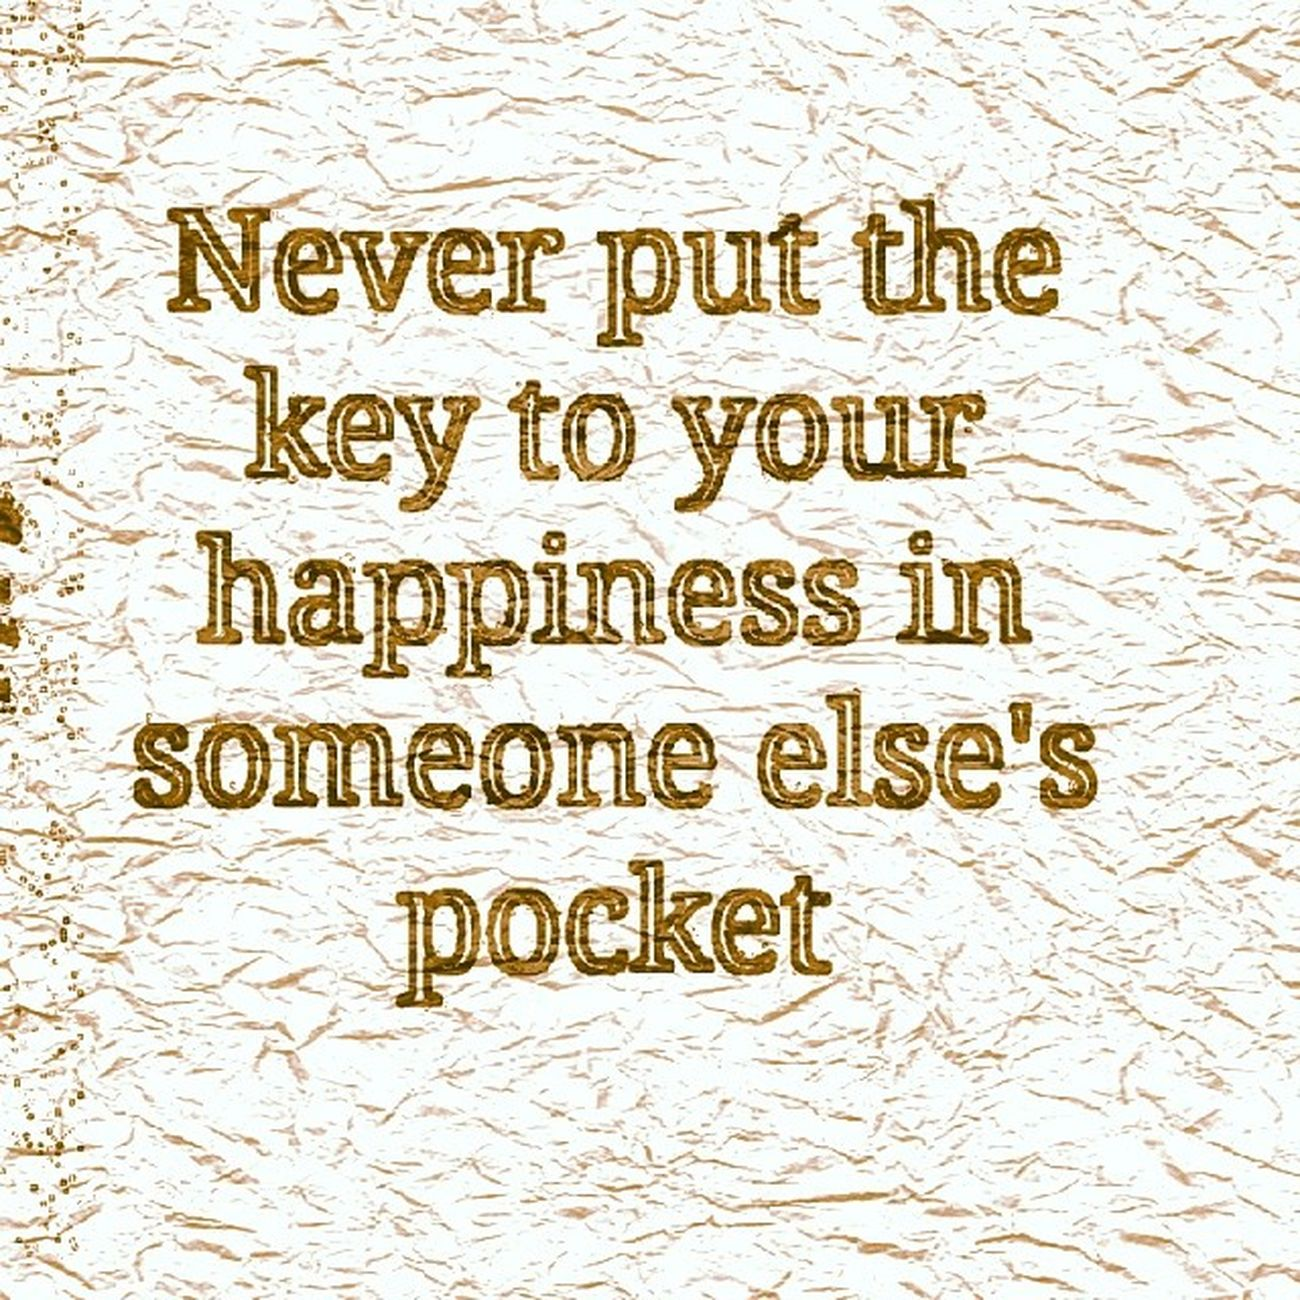 Happy Happiness Keytohappiness Wordsofwisdom wisewords